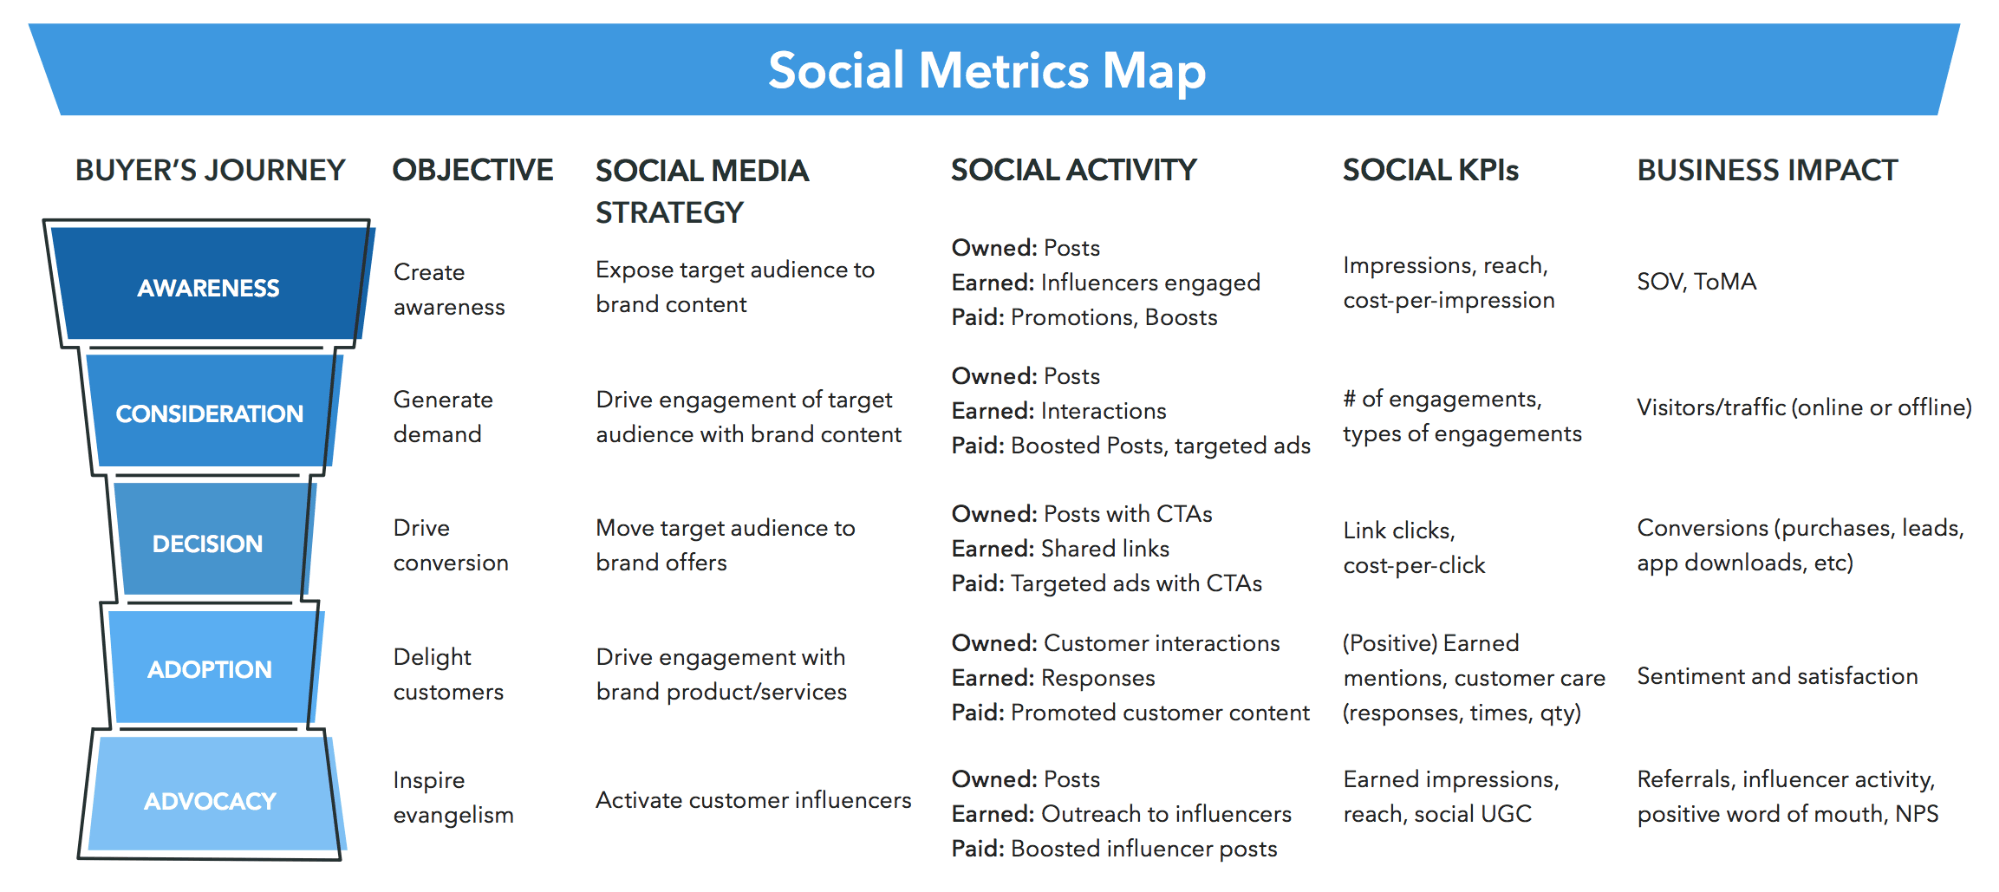 Social Metrics Map showing all of the relevant key performance indicators for A/B Testing